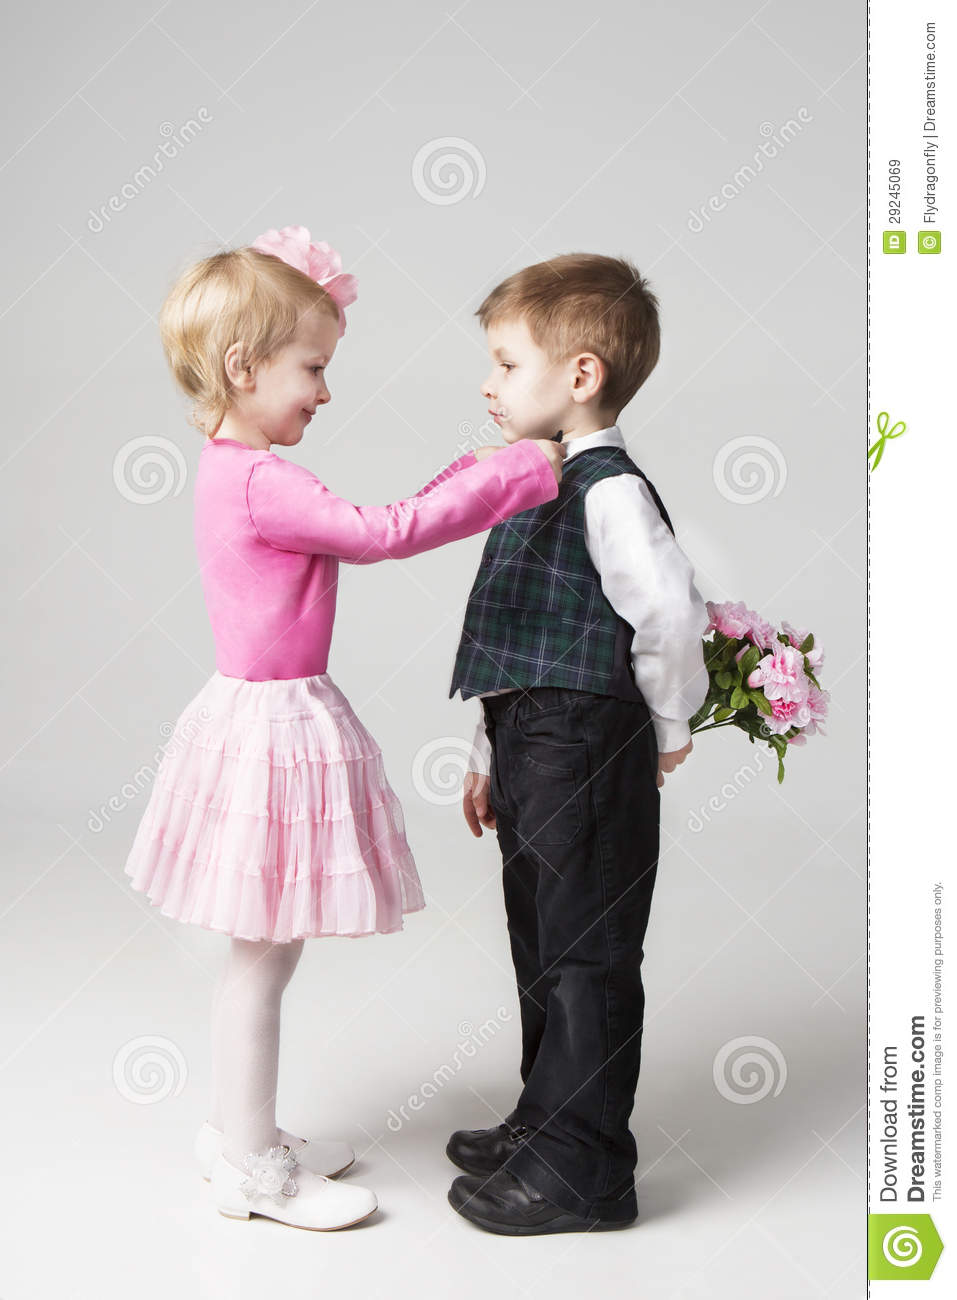 Little Girl Corrects Boy S Tie Stock Image Image 29245069